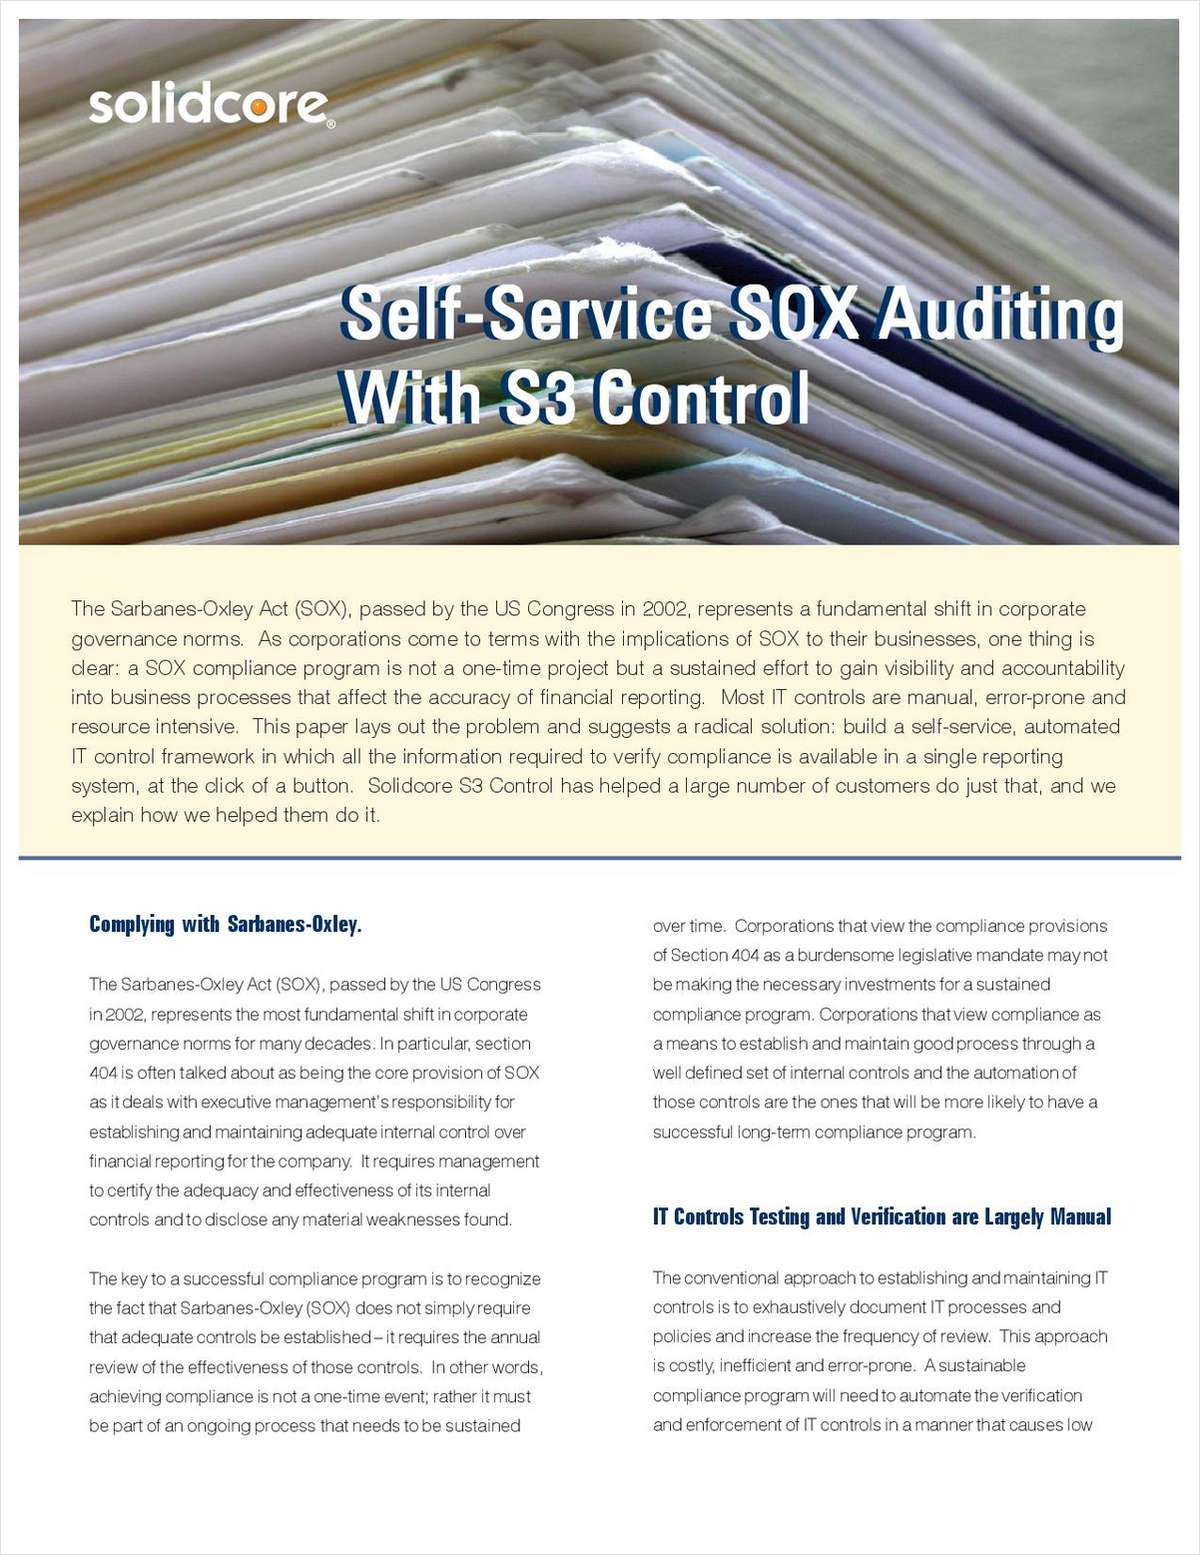 Self-Service SOX Auditing with S3 Control